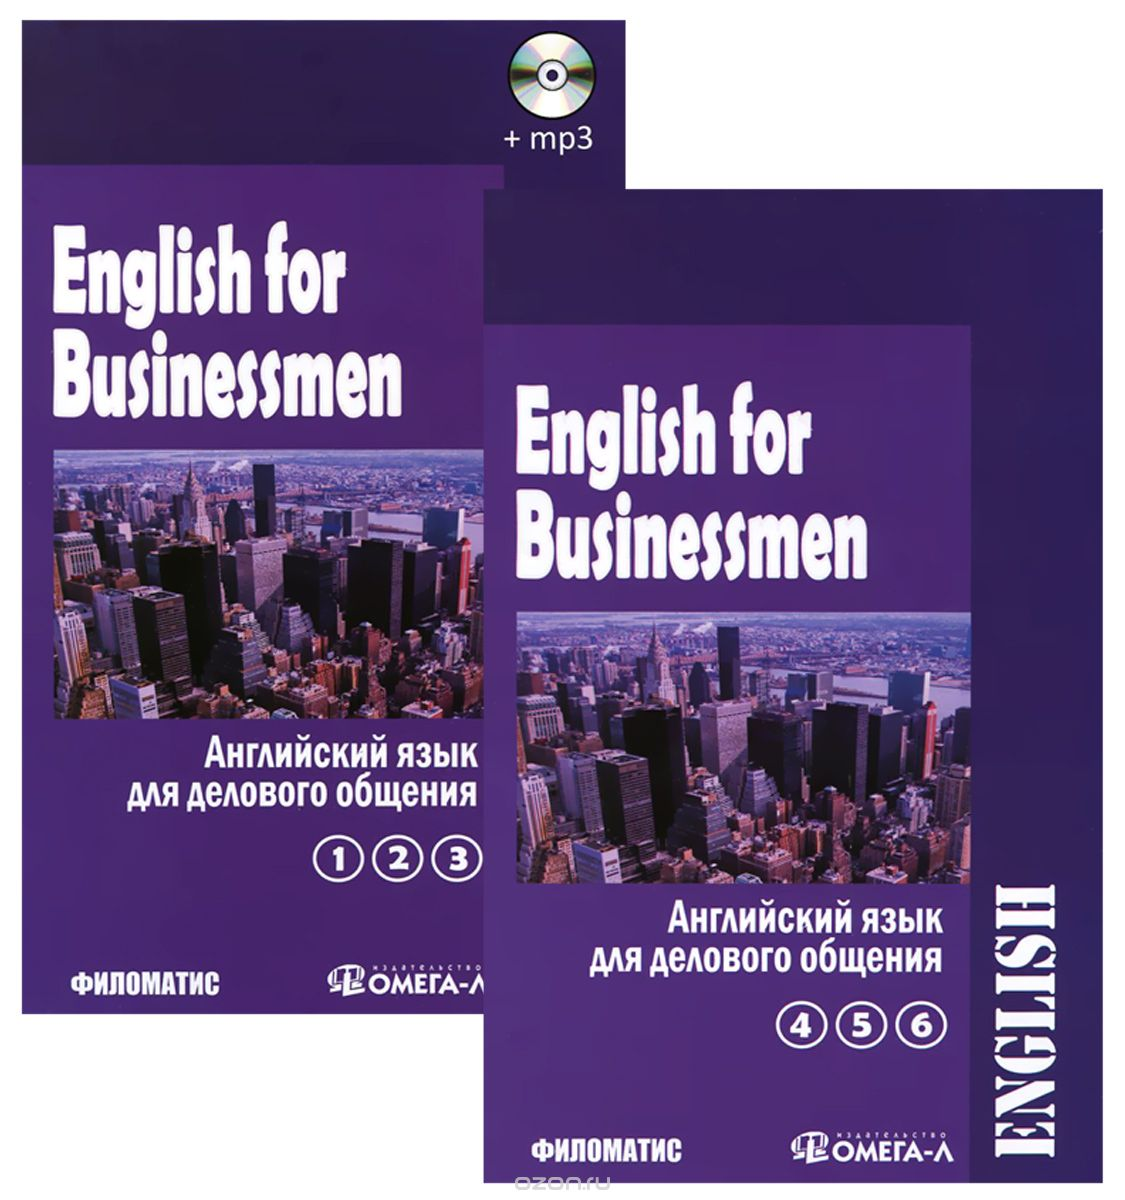 English for Businessmen / Английский язык для делового общения.  В 2 томах  (комплект из 2 книг + CD)